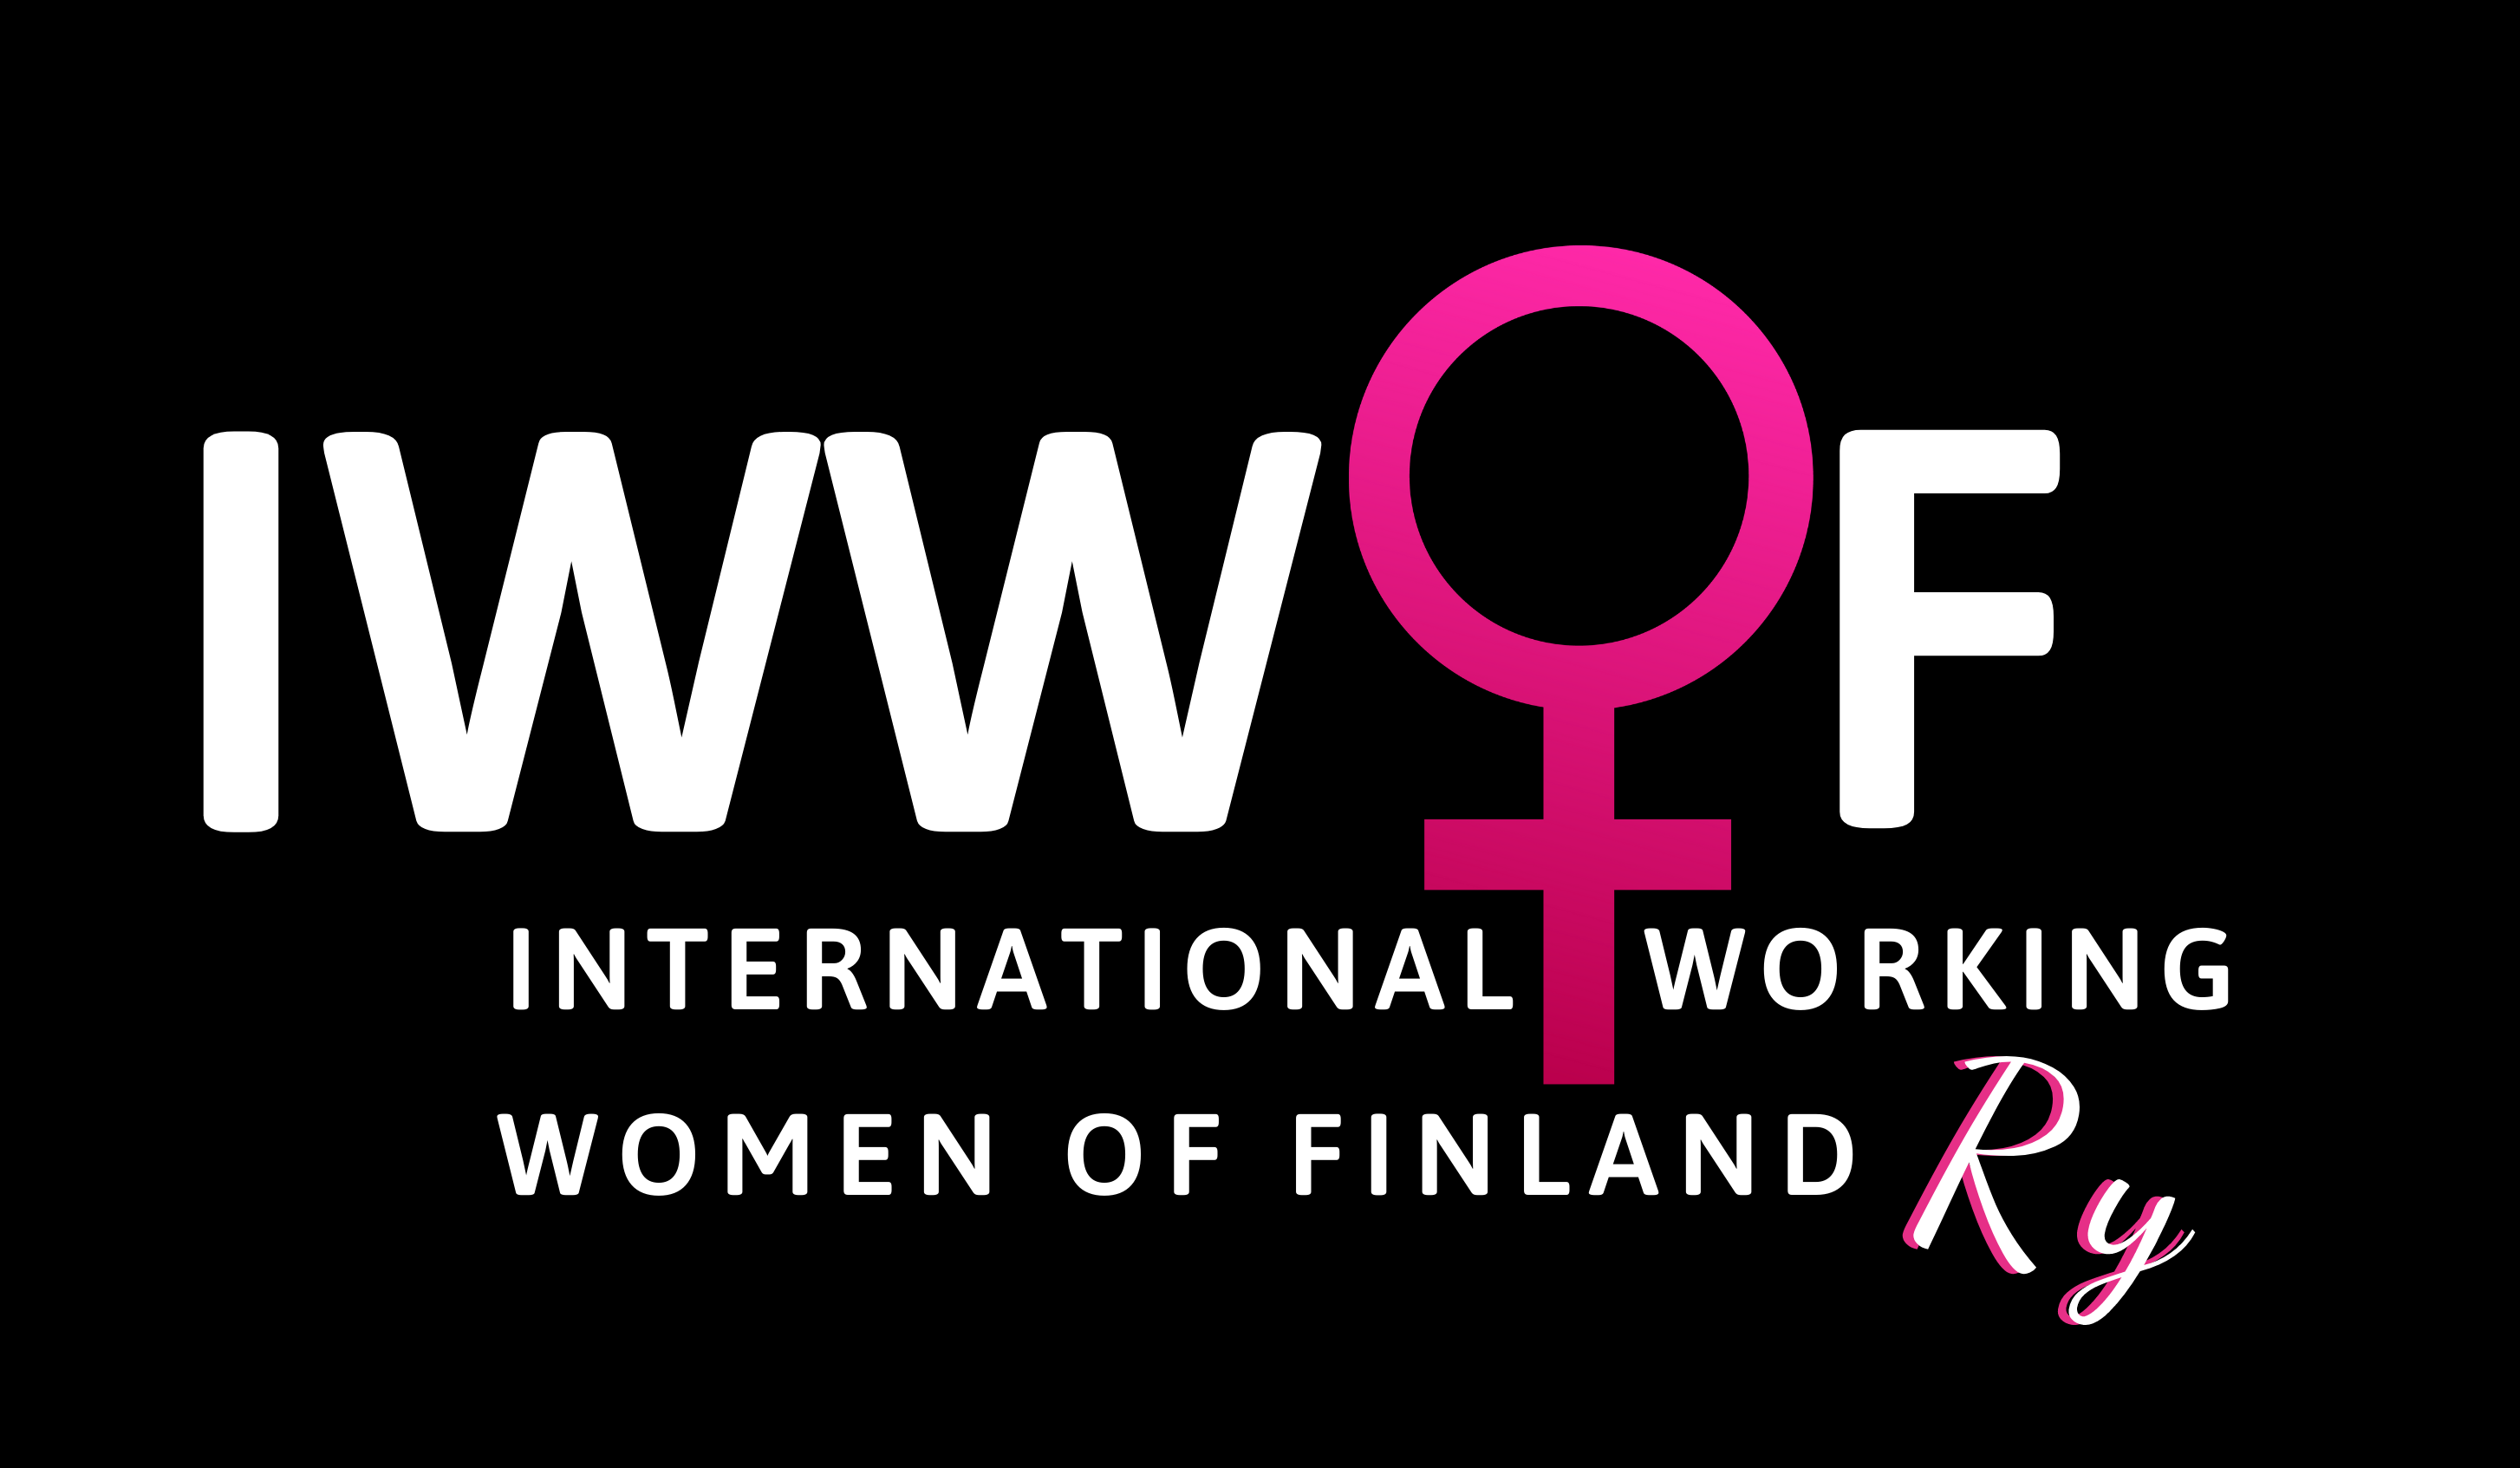 Link to IWWOF facebook group page